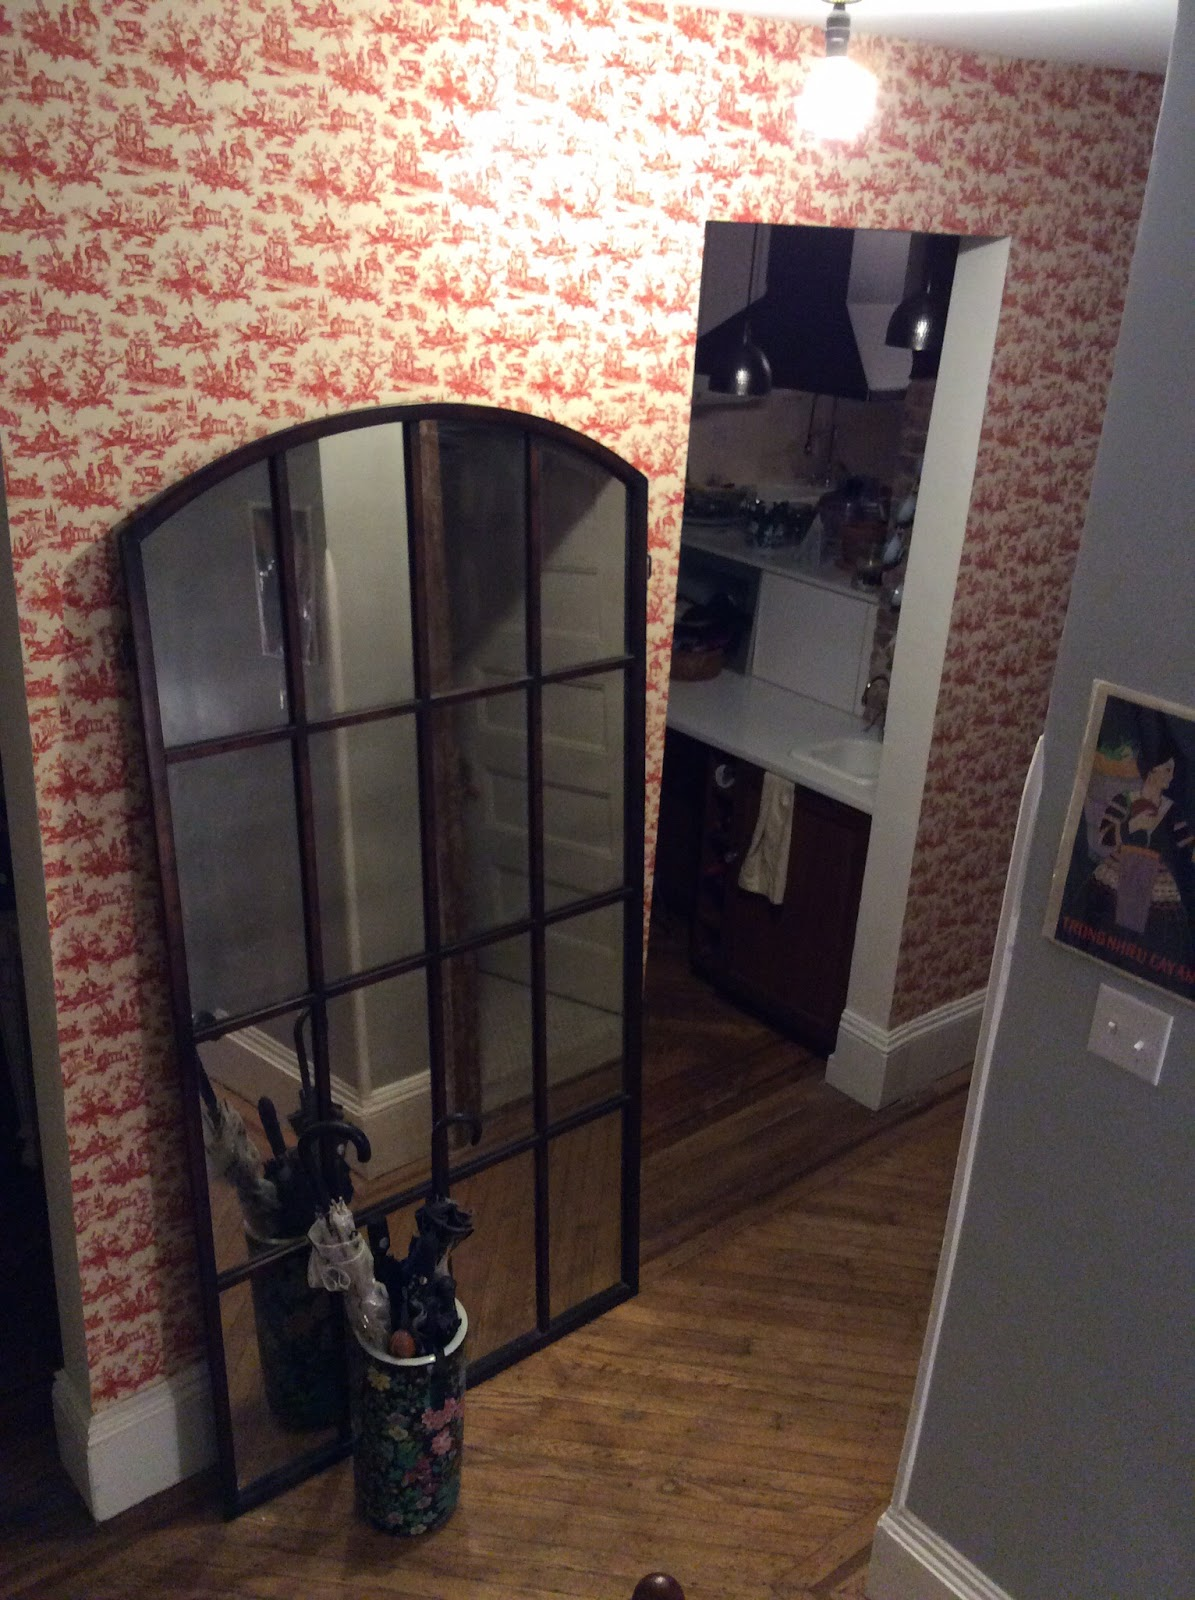 Foyer with large glass mirror and seat and umbrella stand